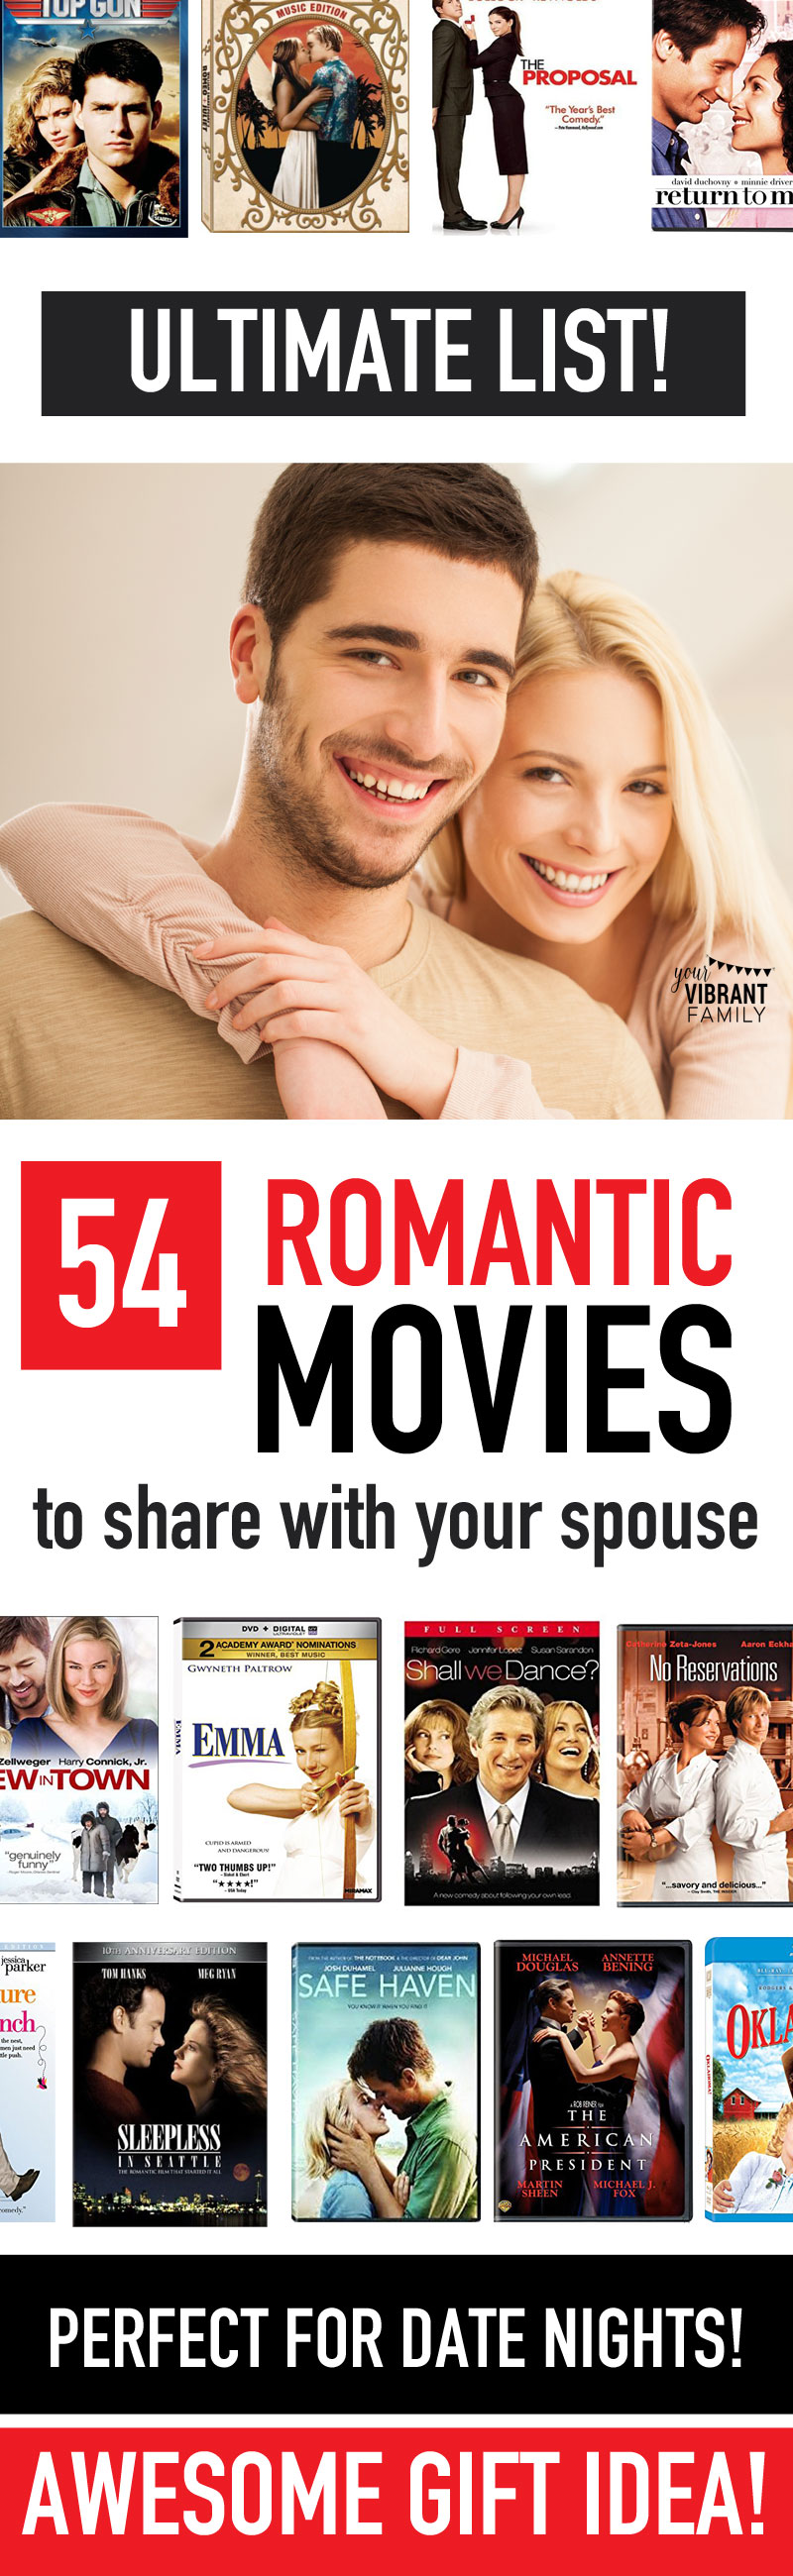 romantic movies | romantic movie | romantic comedy movies | top romantic movies | most romantic movies | romantic movies watch | top 10 romantic movies | top 100 romantic movies | top 10 most romantic movies | romantic movies list | romantic date night ideas | stay home date night ideas | stay at home date night ideas | stay home date ideas | classic romance movies | classic romantic comedy movies